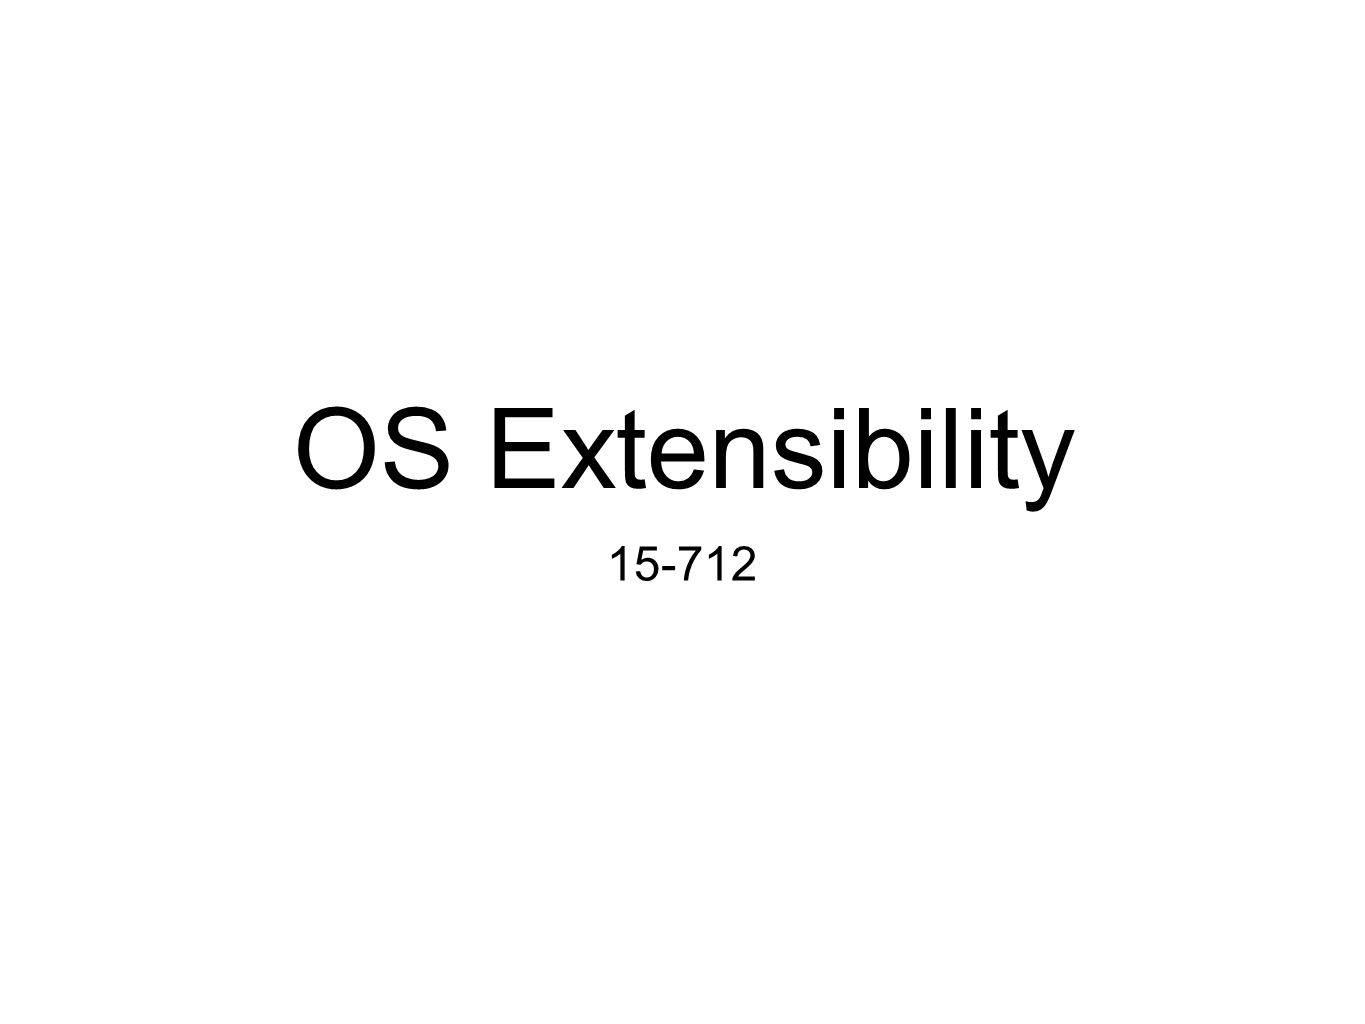 OS Extensibility 15-712